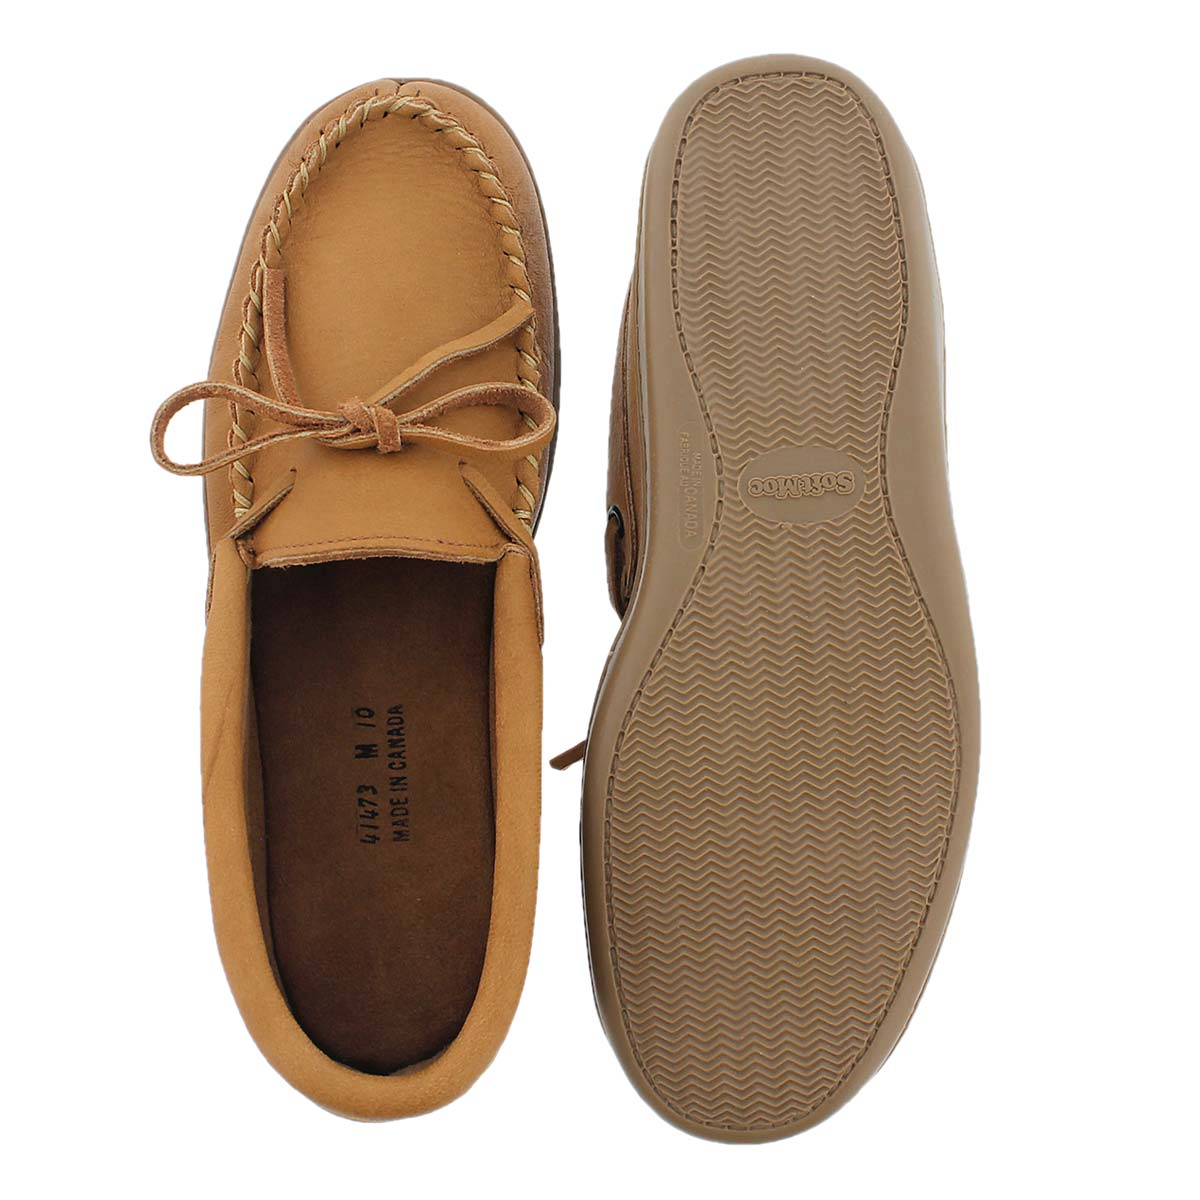 Mns cork rubber sole moosehide moccasin